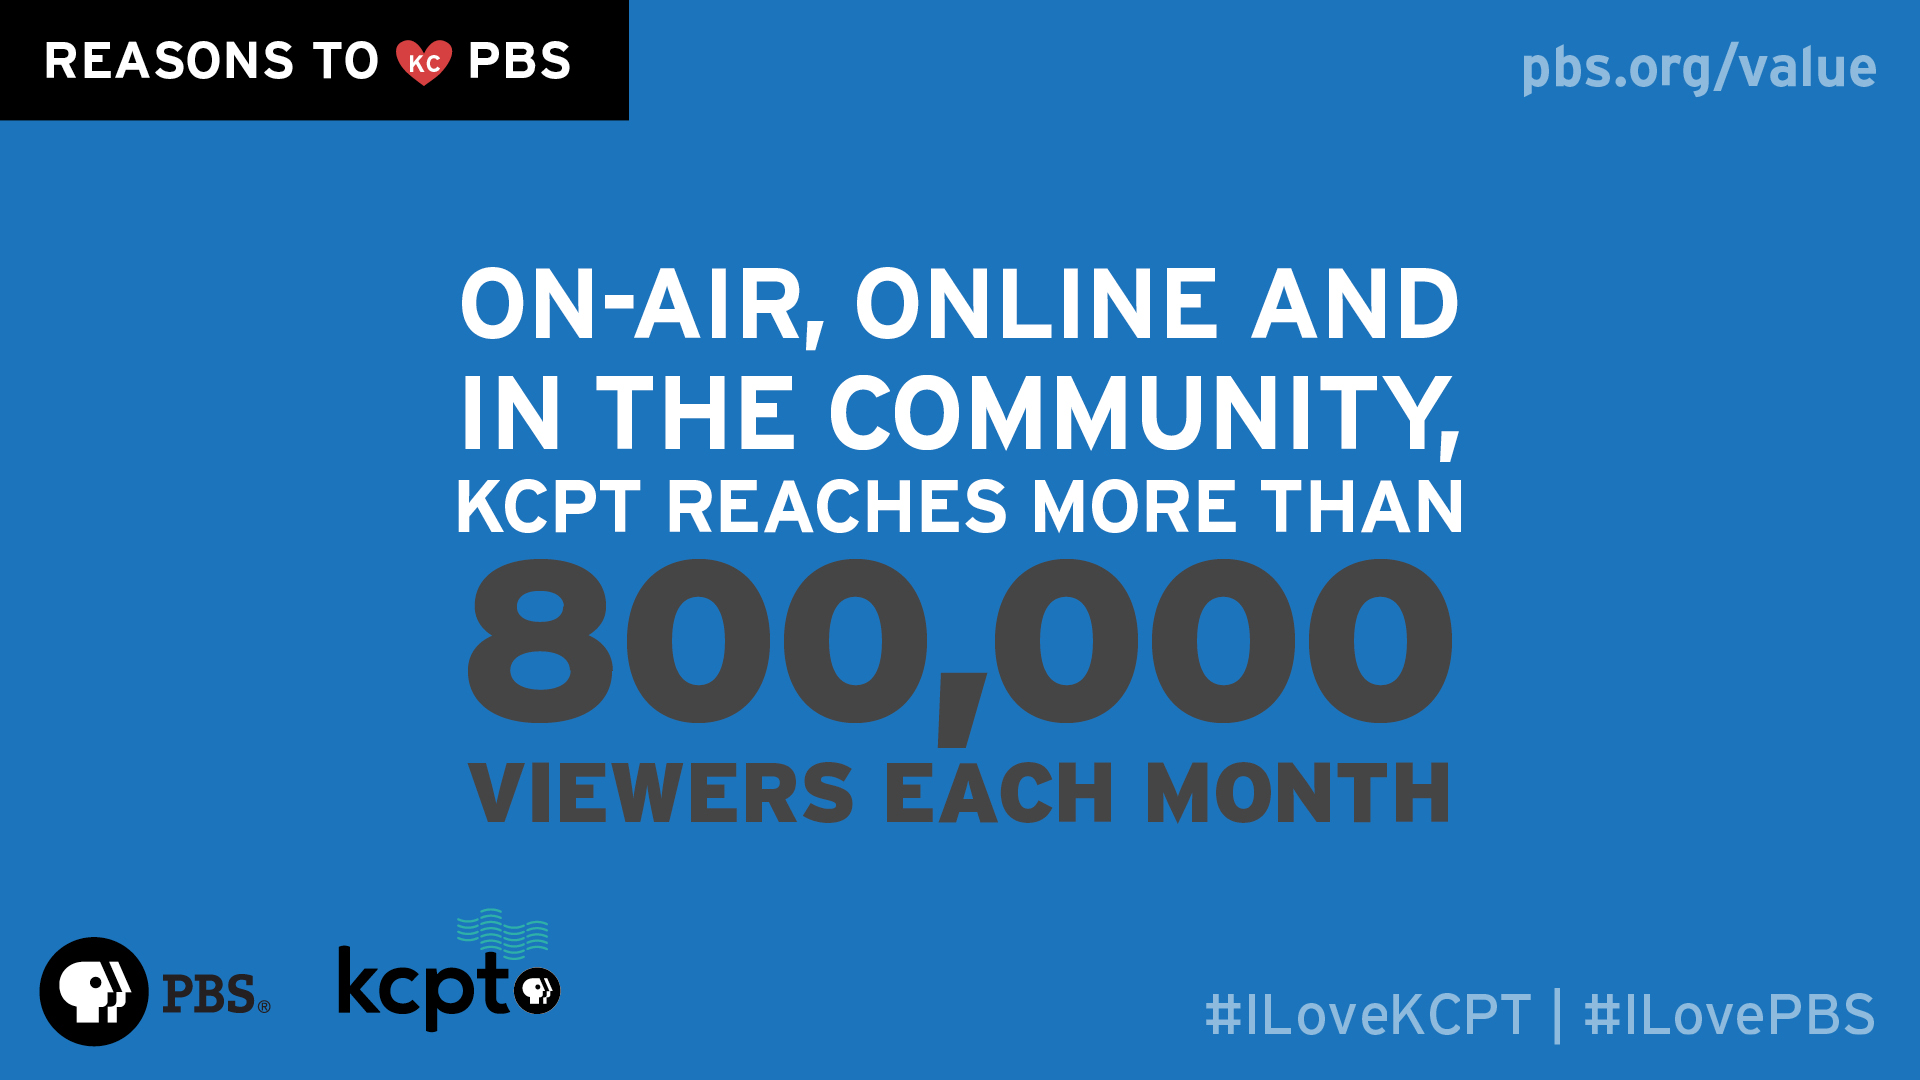 On-air, online and in the community, KCPT reaches 800,000 viewers each month.